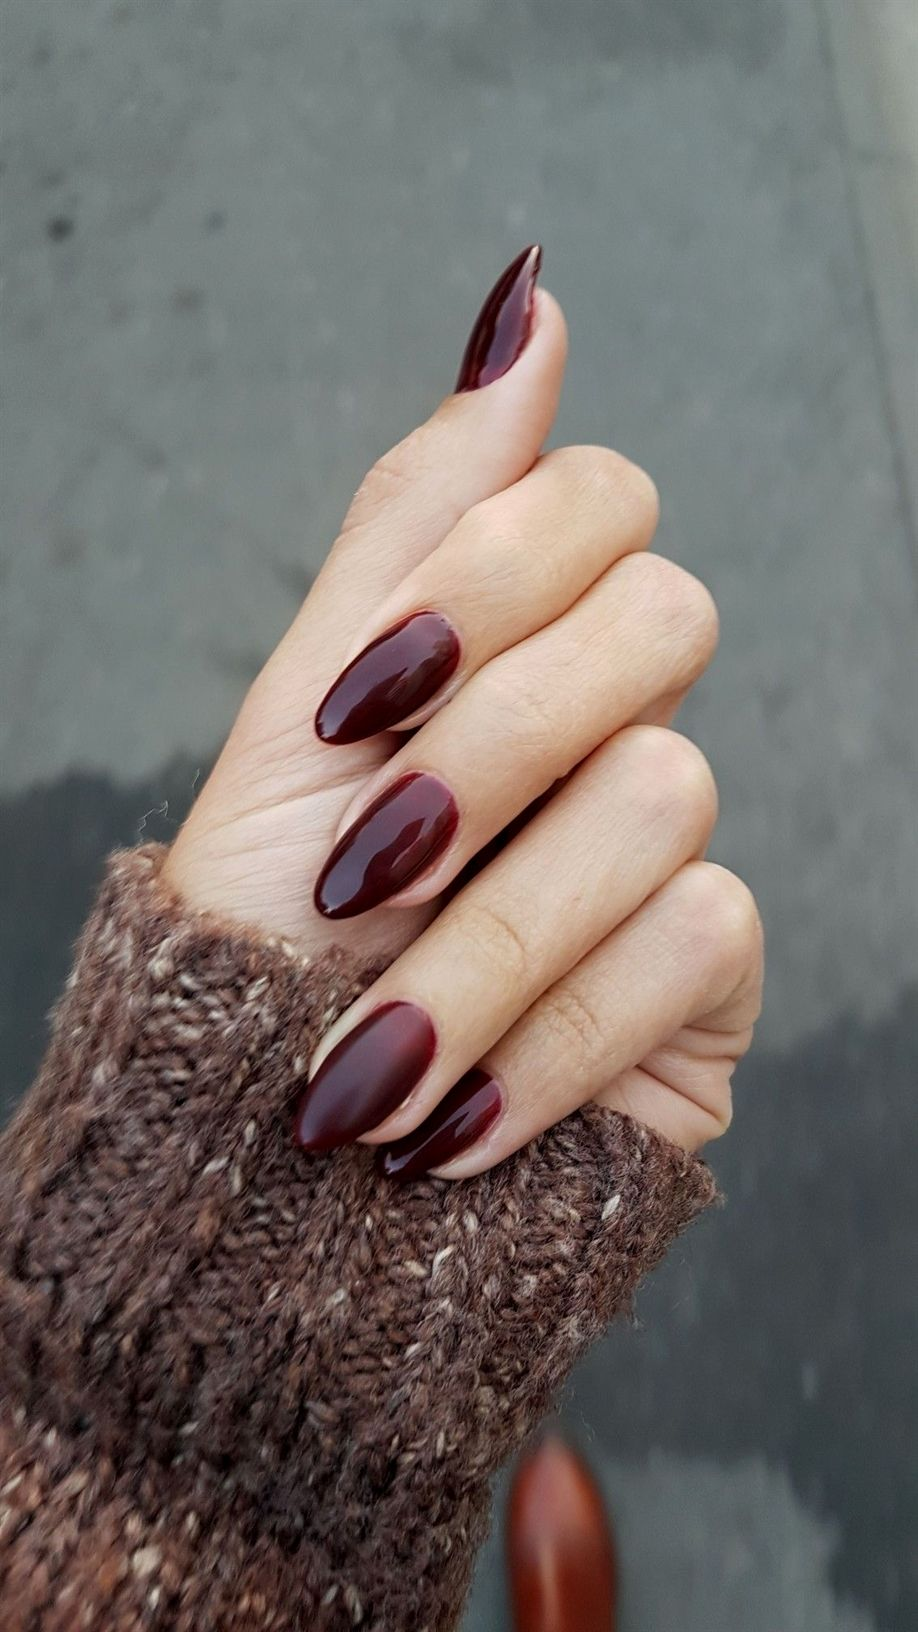 Love This Nail Color For Autumn Burgundy Elegant Feisty Almond Shaped Nails 2017 Autumn Acr Almond Shape Nails Acrylic Nail Shapes Winter Nails Acrylic